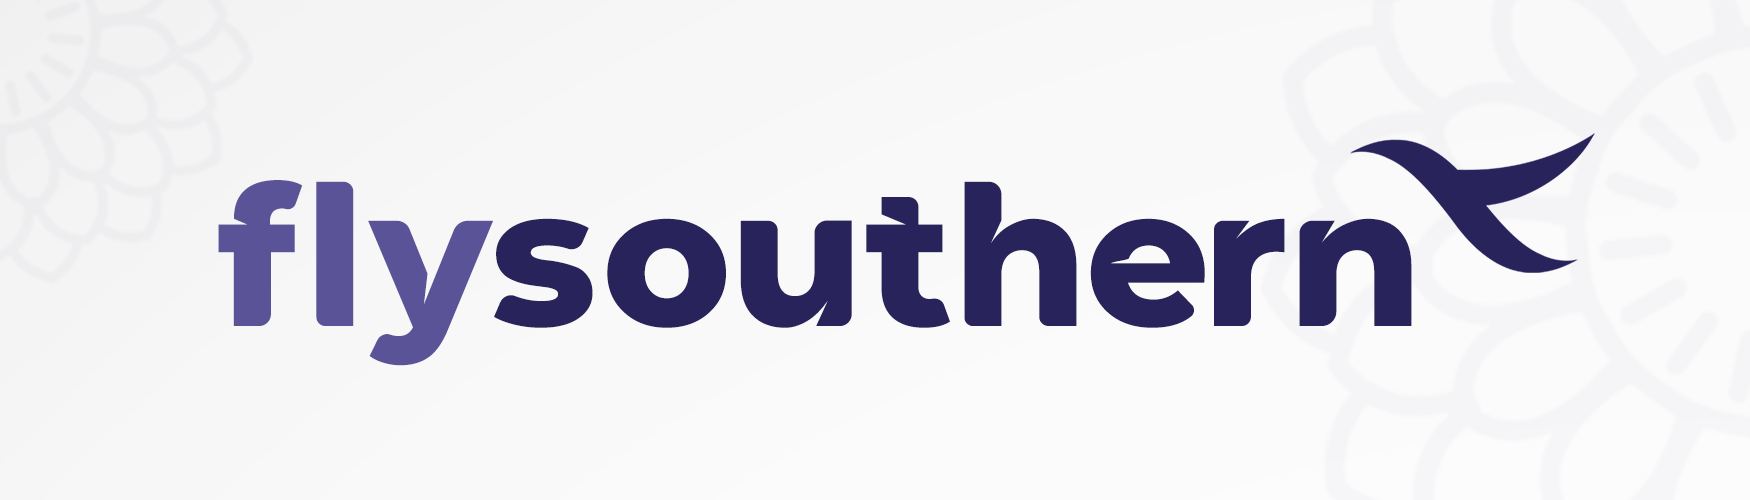 flysouthern-new-logo.png